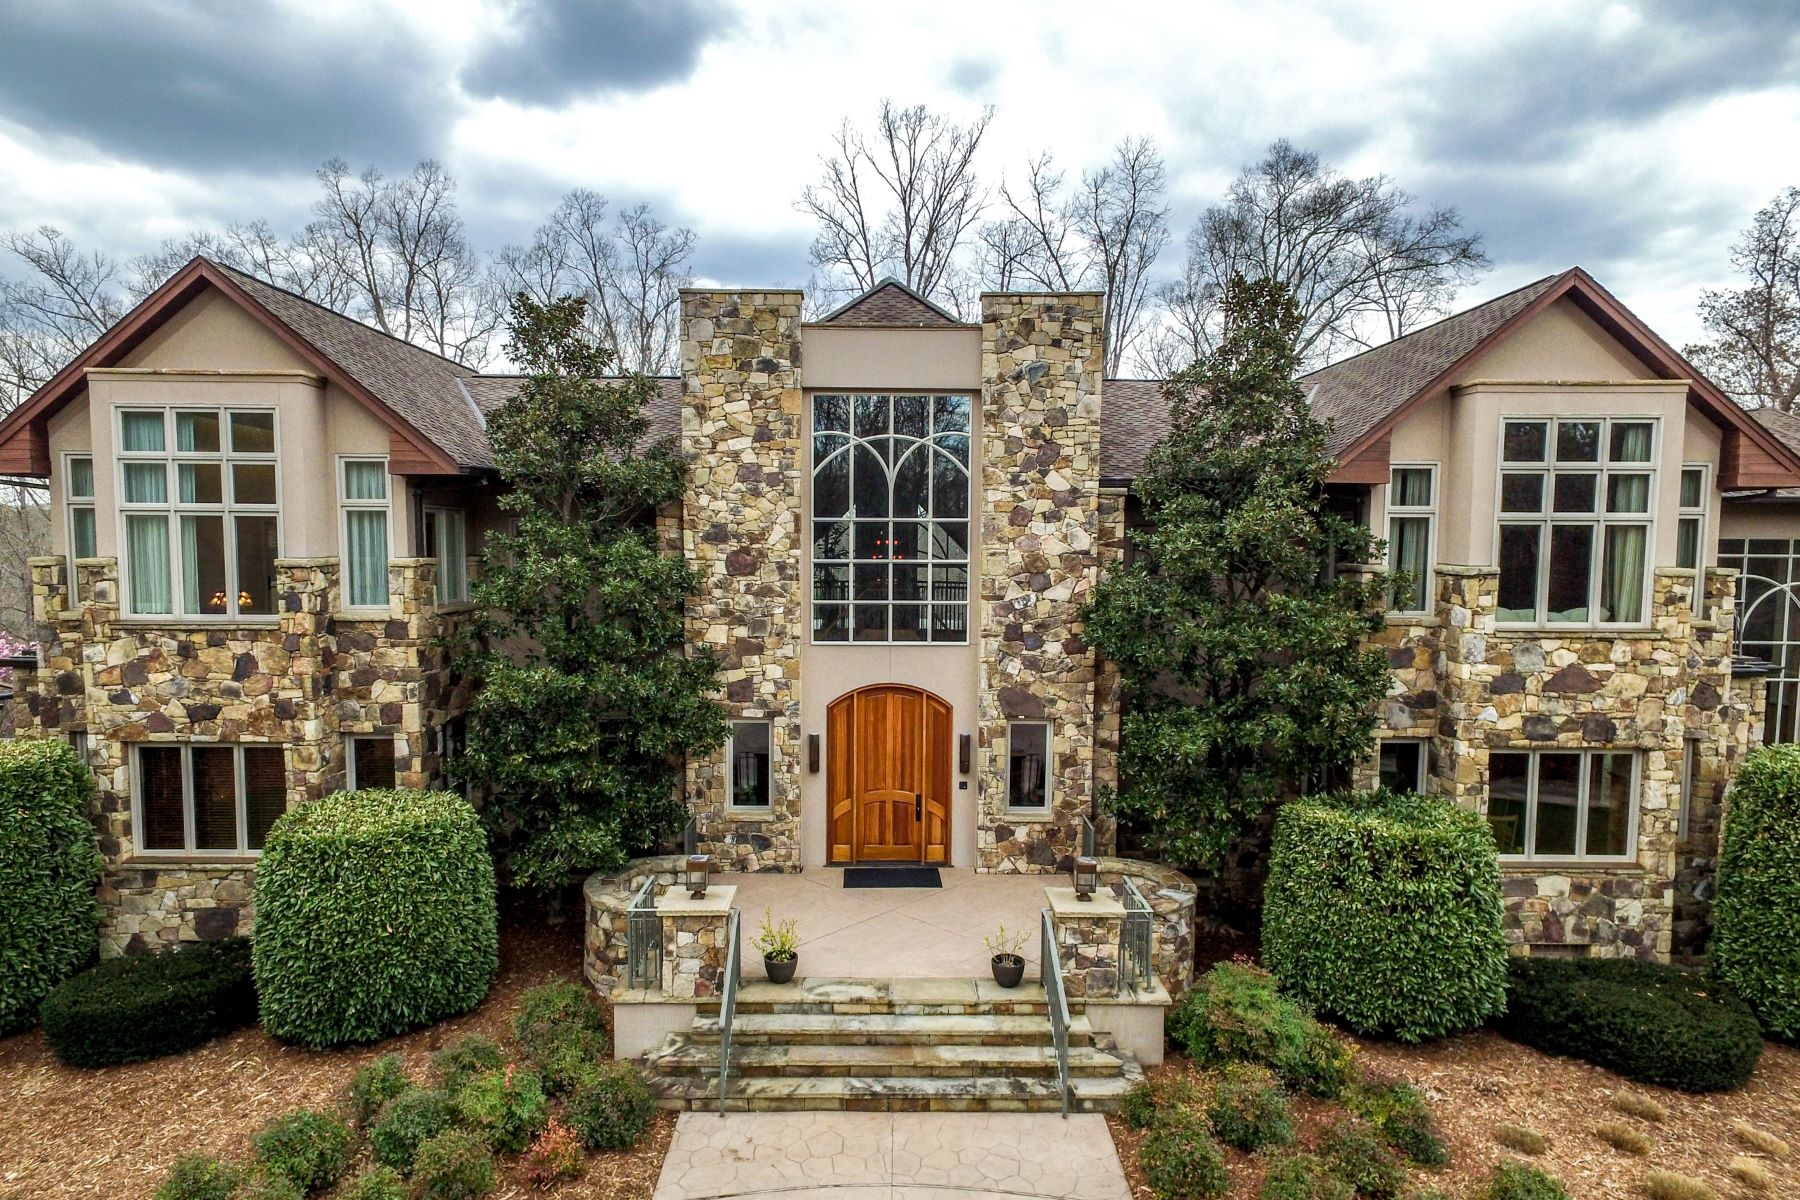 Single Family Home for Sale at Silers Fen 104 Silers Fen Court Chapel Hill, North Carolina 27517 United StatesIn/Around: Cary, Durham, Raleigh